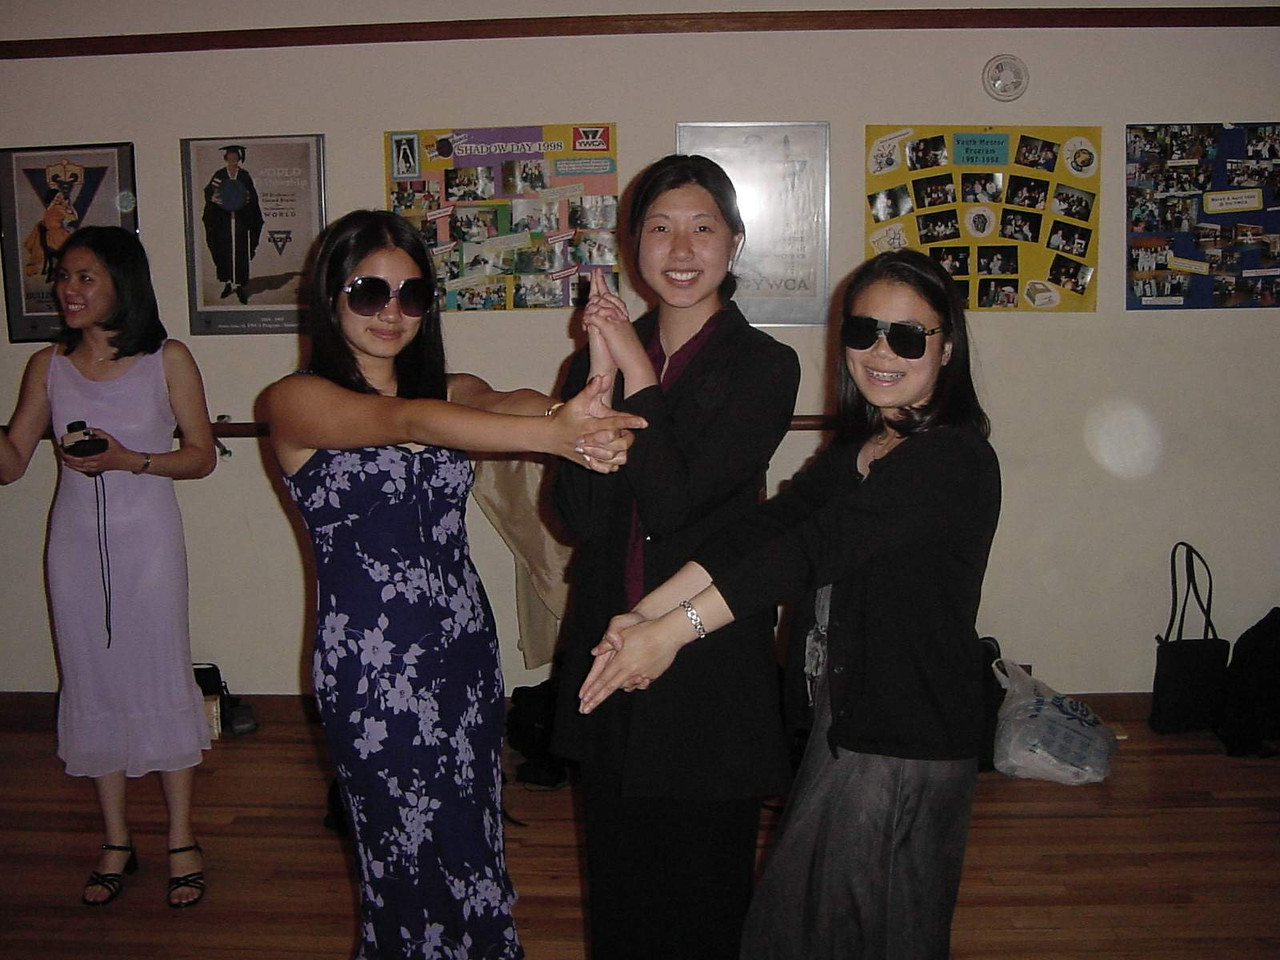 Brittany, Peggy, Annie - Charlie's Angels